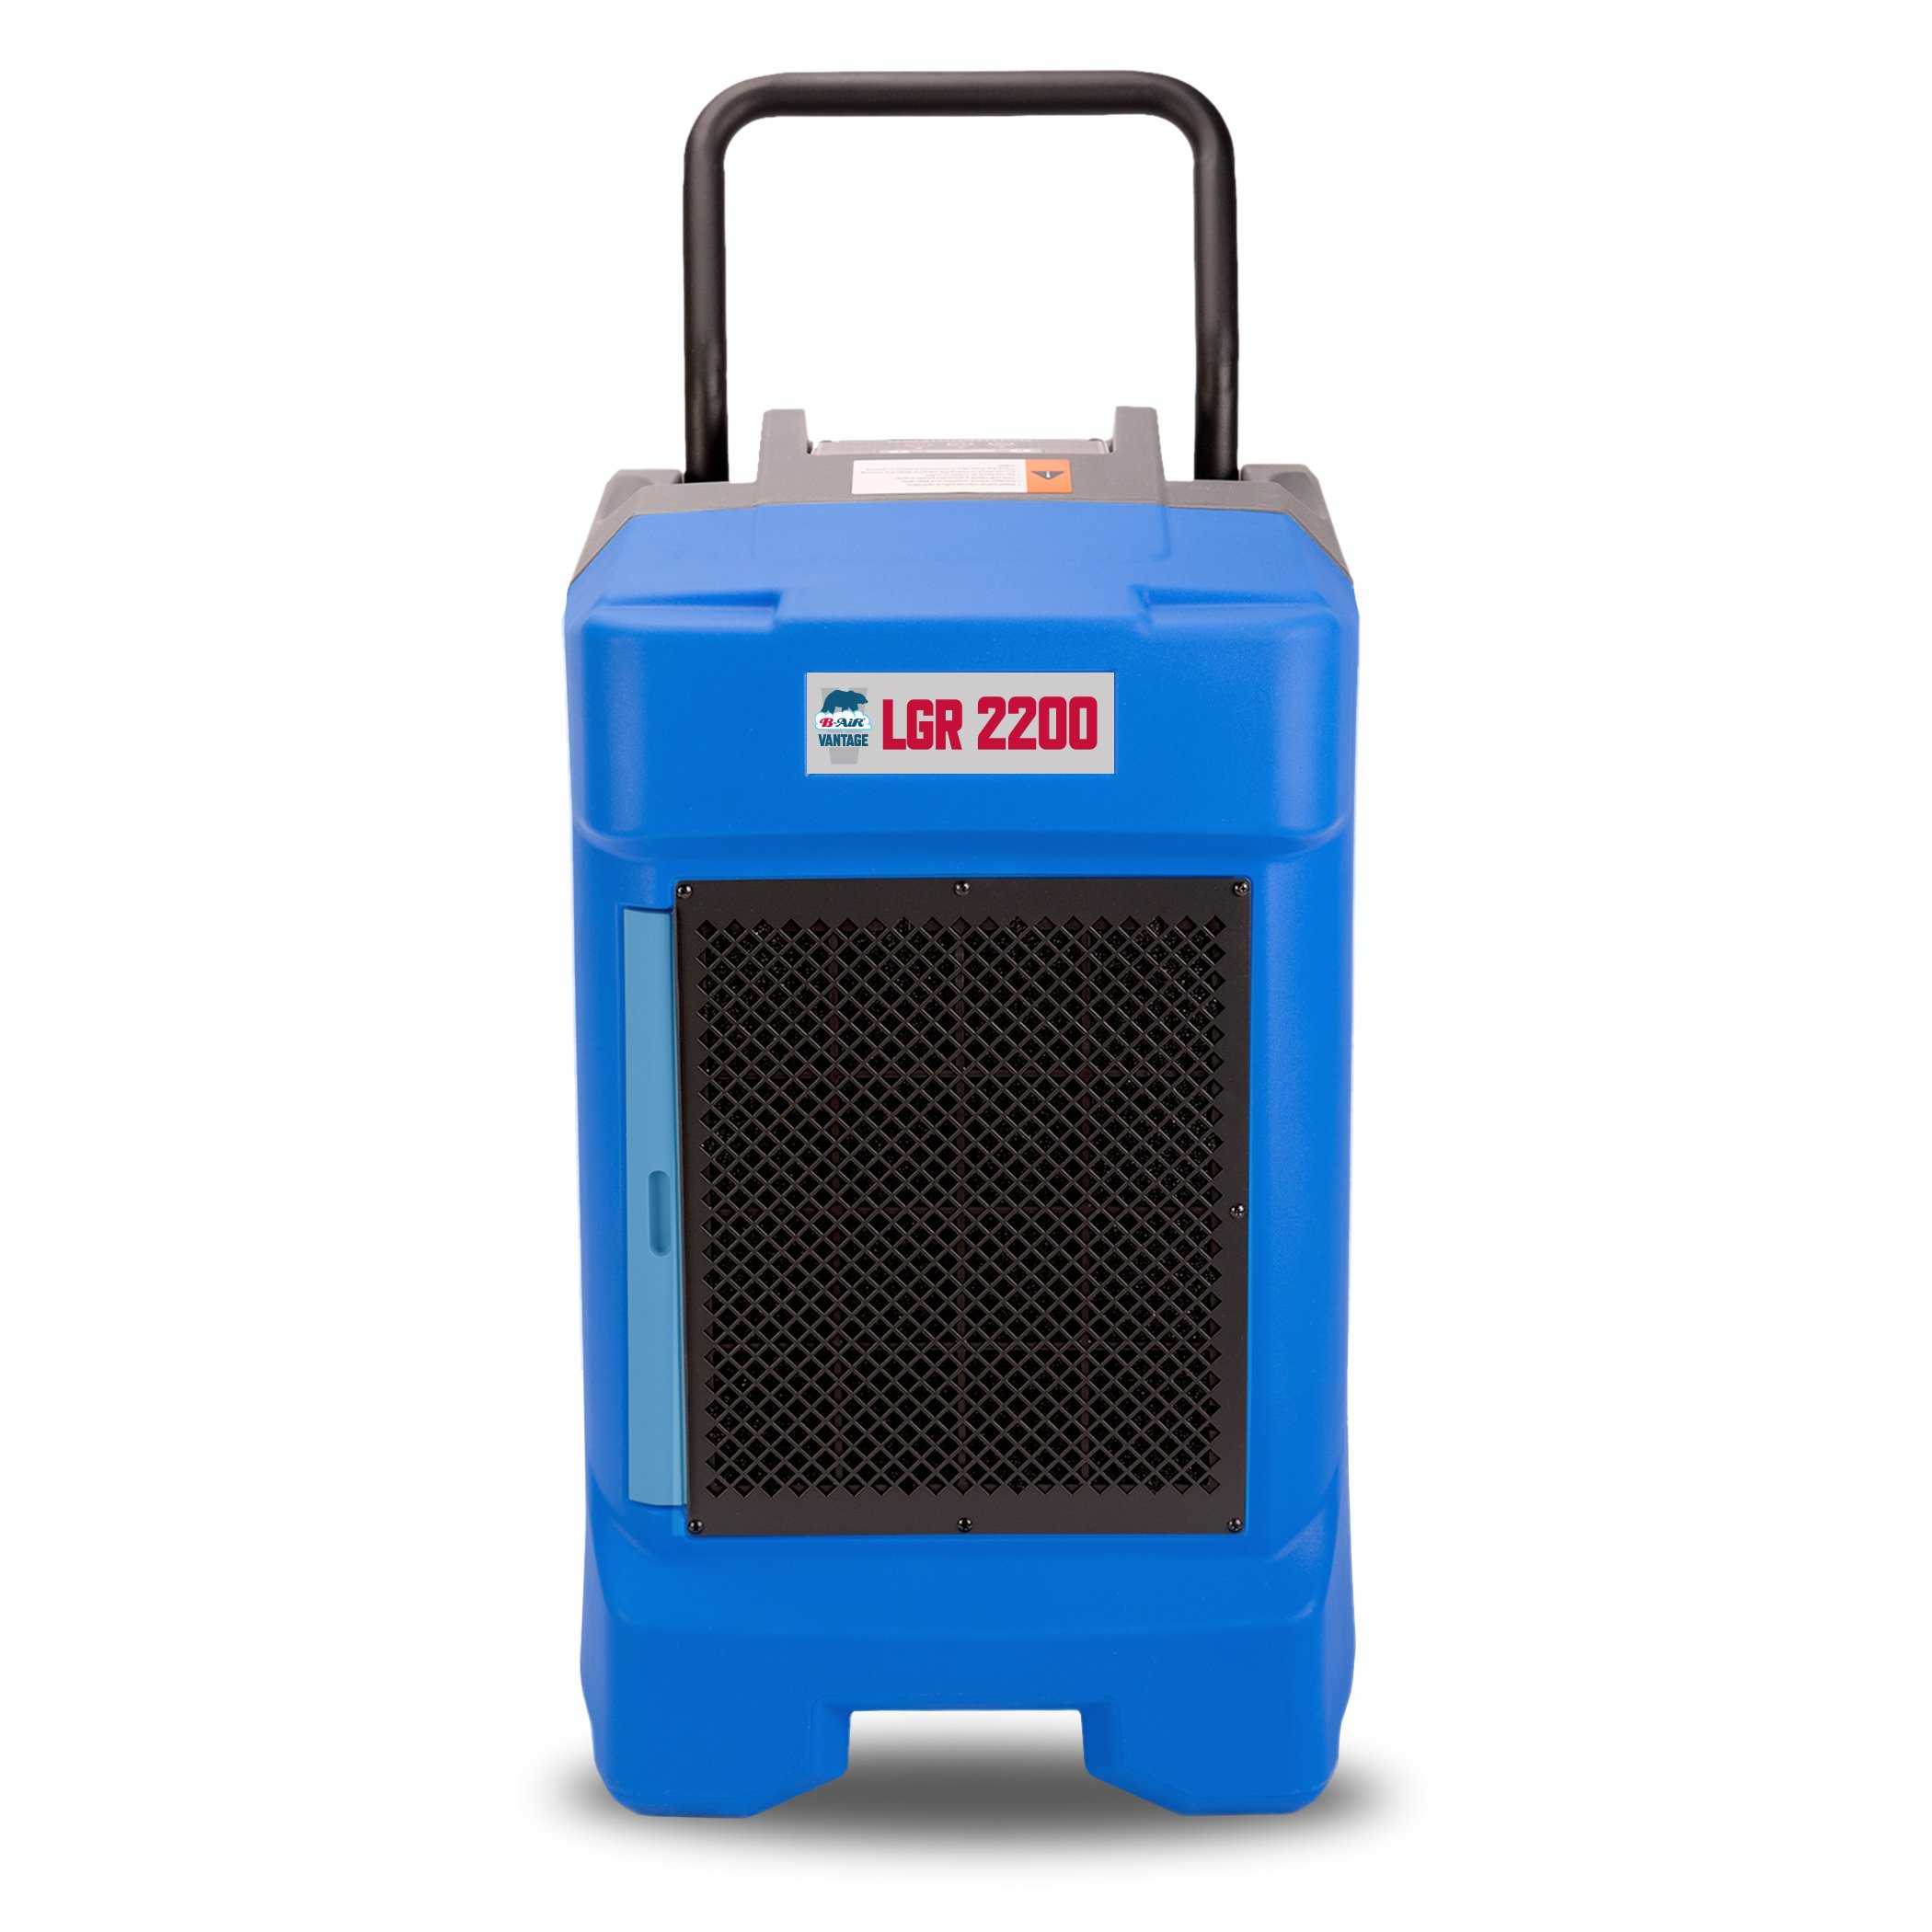 B-Air VG-2200 225 Pint 400 CFM Commercial LGR Dehumidifier for Water Damage Restoration Mold Remediation, Blue